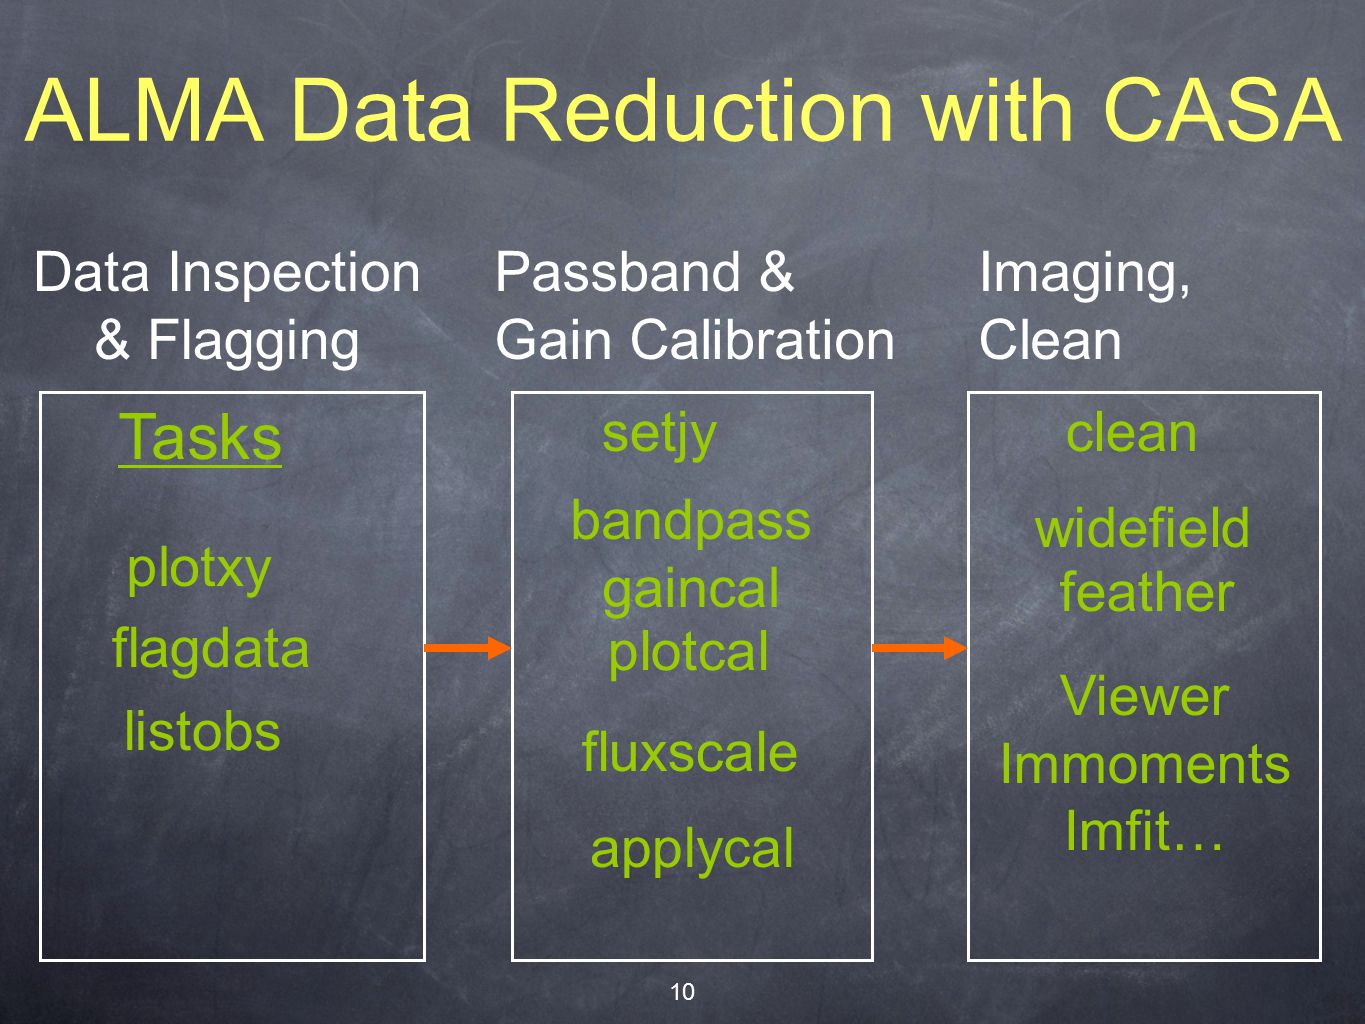 10 ALMA Data Reduction with CASA Data Inspection & Flagging Passband & Gain Calibration Imaging, Clean Tasks plotxy flagdata Viewer Immoments Imfit… listobs setjy bandpass gaincal plotcal fluxscale applycal clean feather widefield